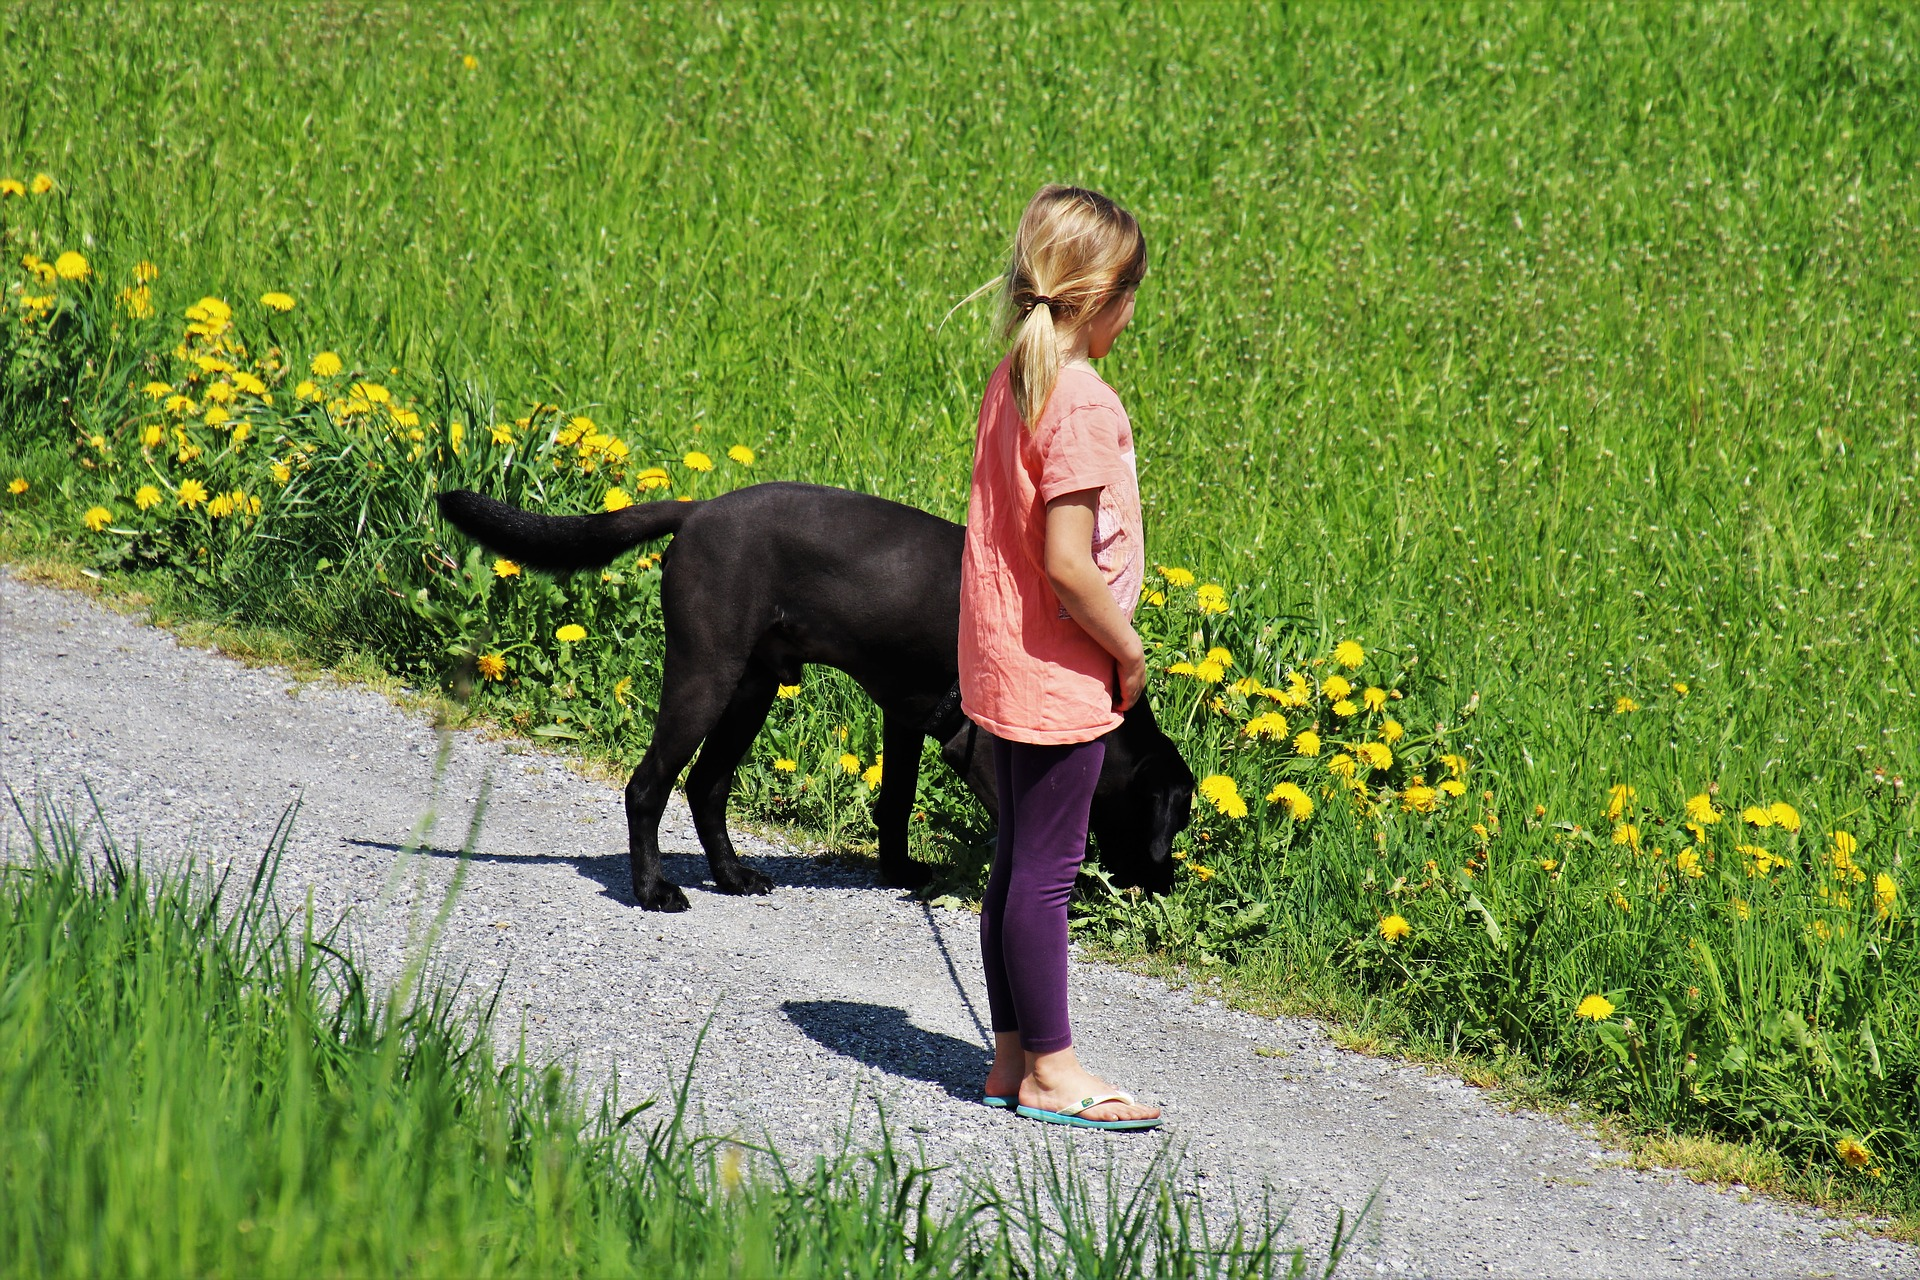 Buddy dog with young girl